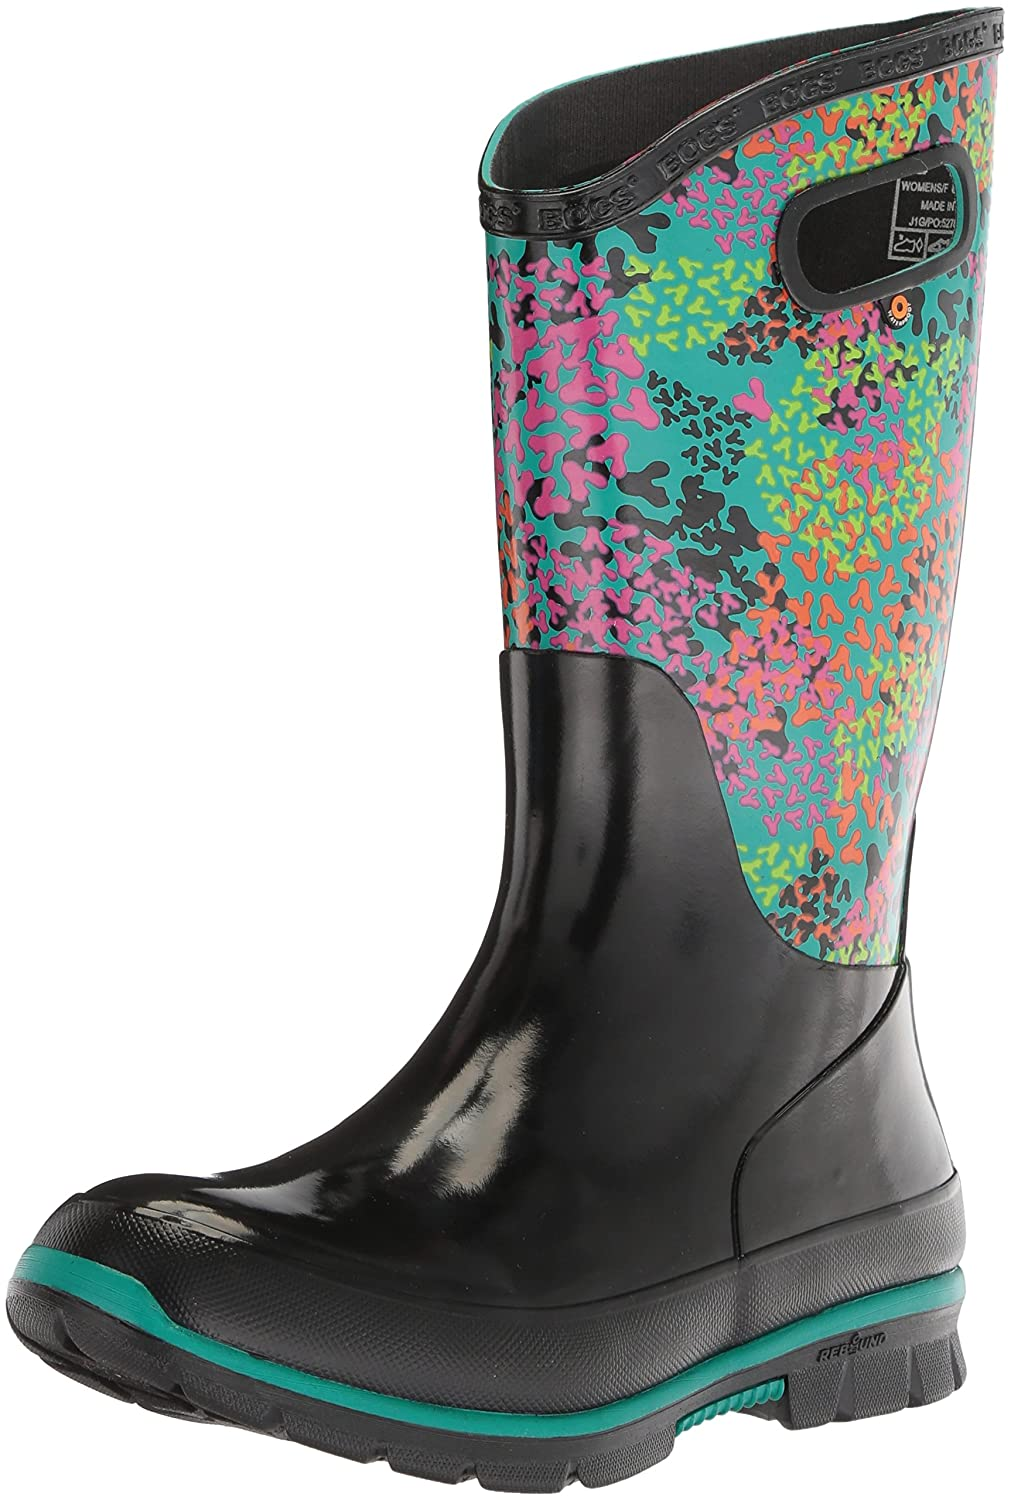 Bogs Women's Berkley Footprints Rain Boot B073PJ71MB 12 B(M) US|Black/Multi